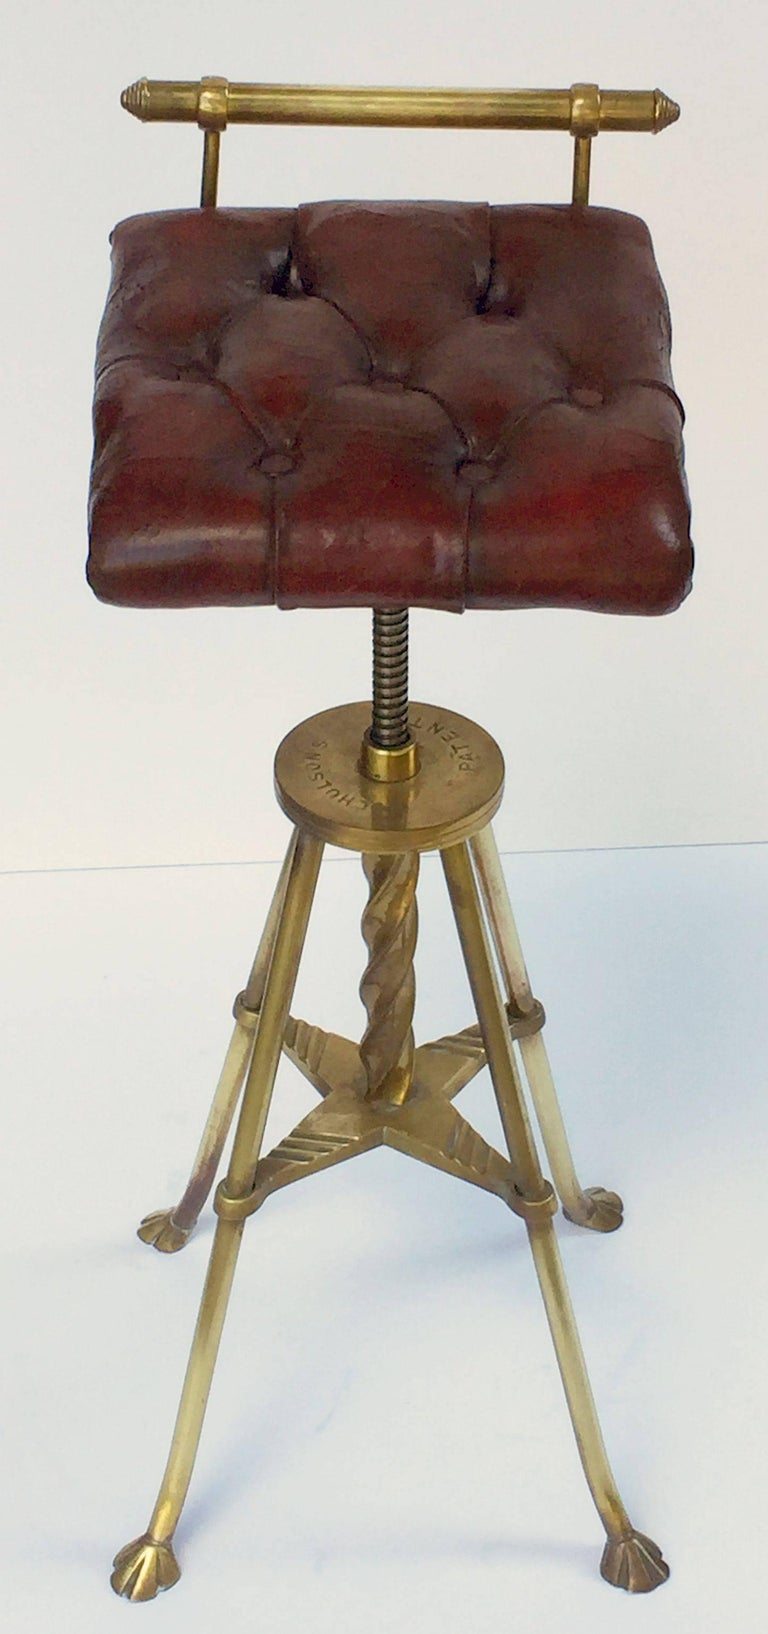 English Harpist's Stool of Brass with Original Button Leather Seat 4